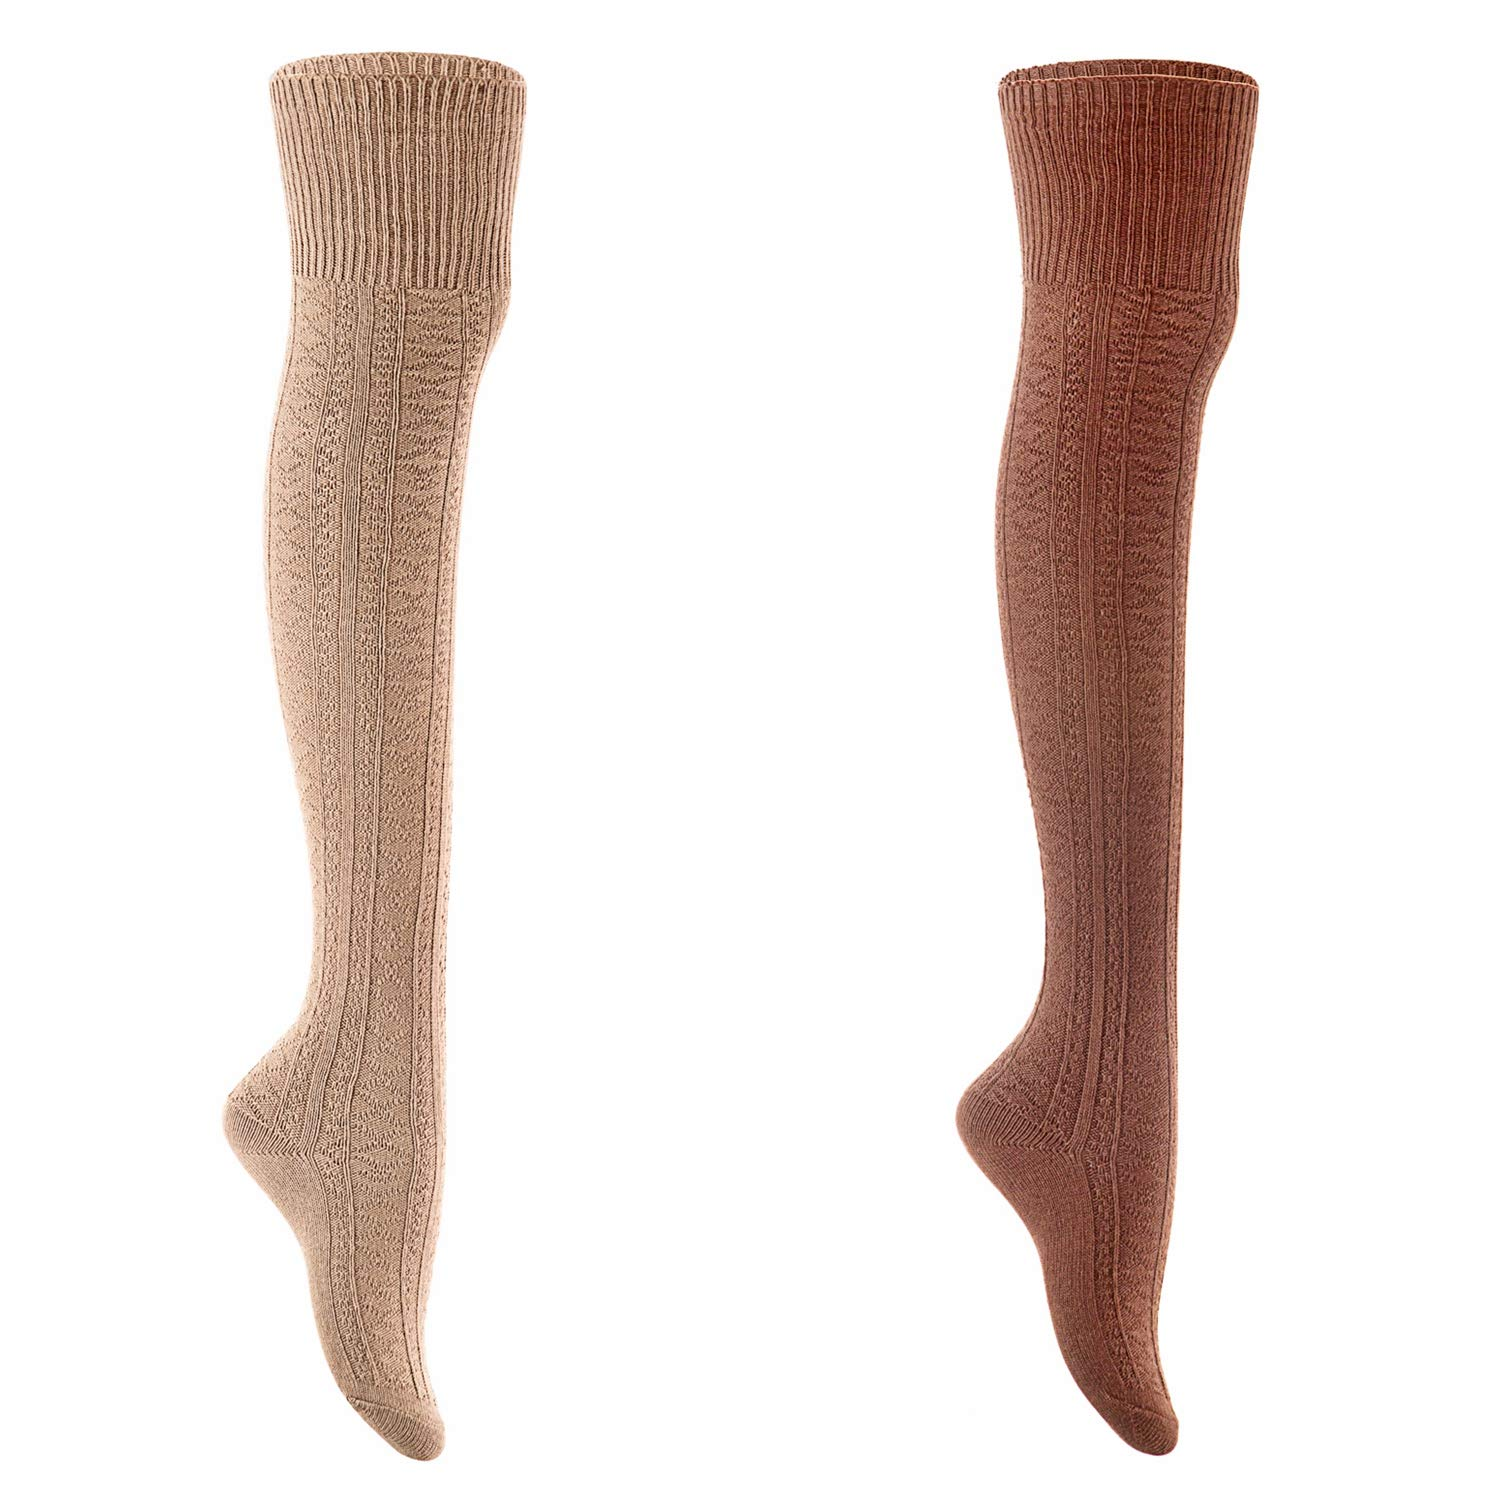 Coffee+beige AATMart Women's 2 Pairs Fashion KneeHigh Cotton Socks M1025 Size 59